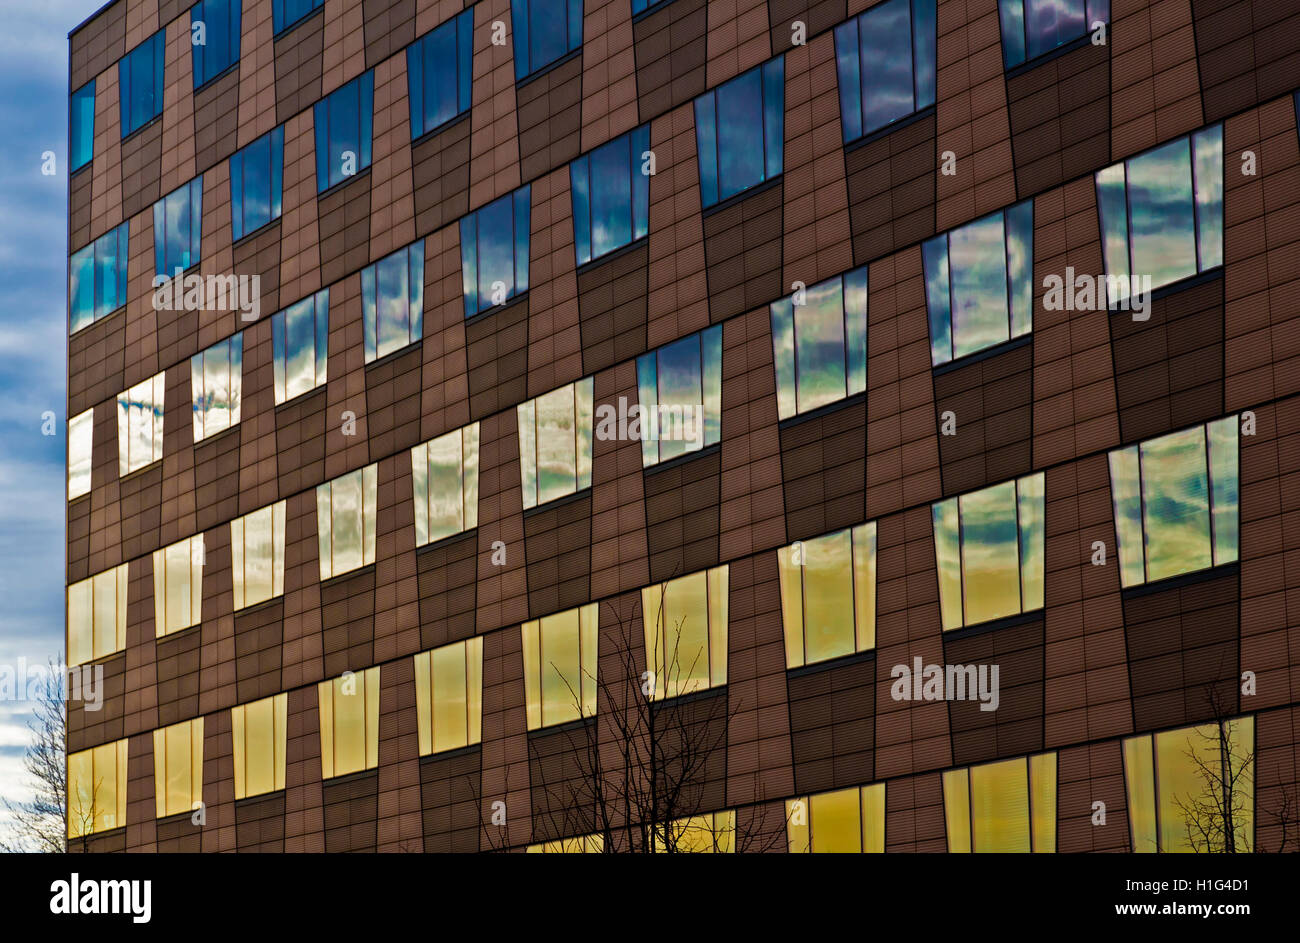 windows of a business house mirroring the sky - Stock Image